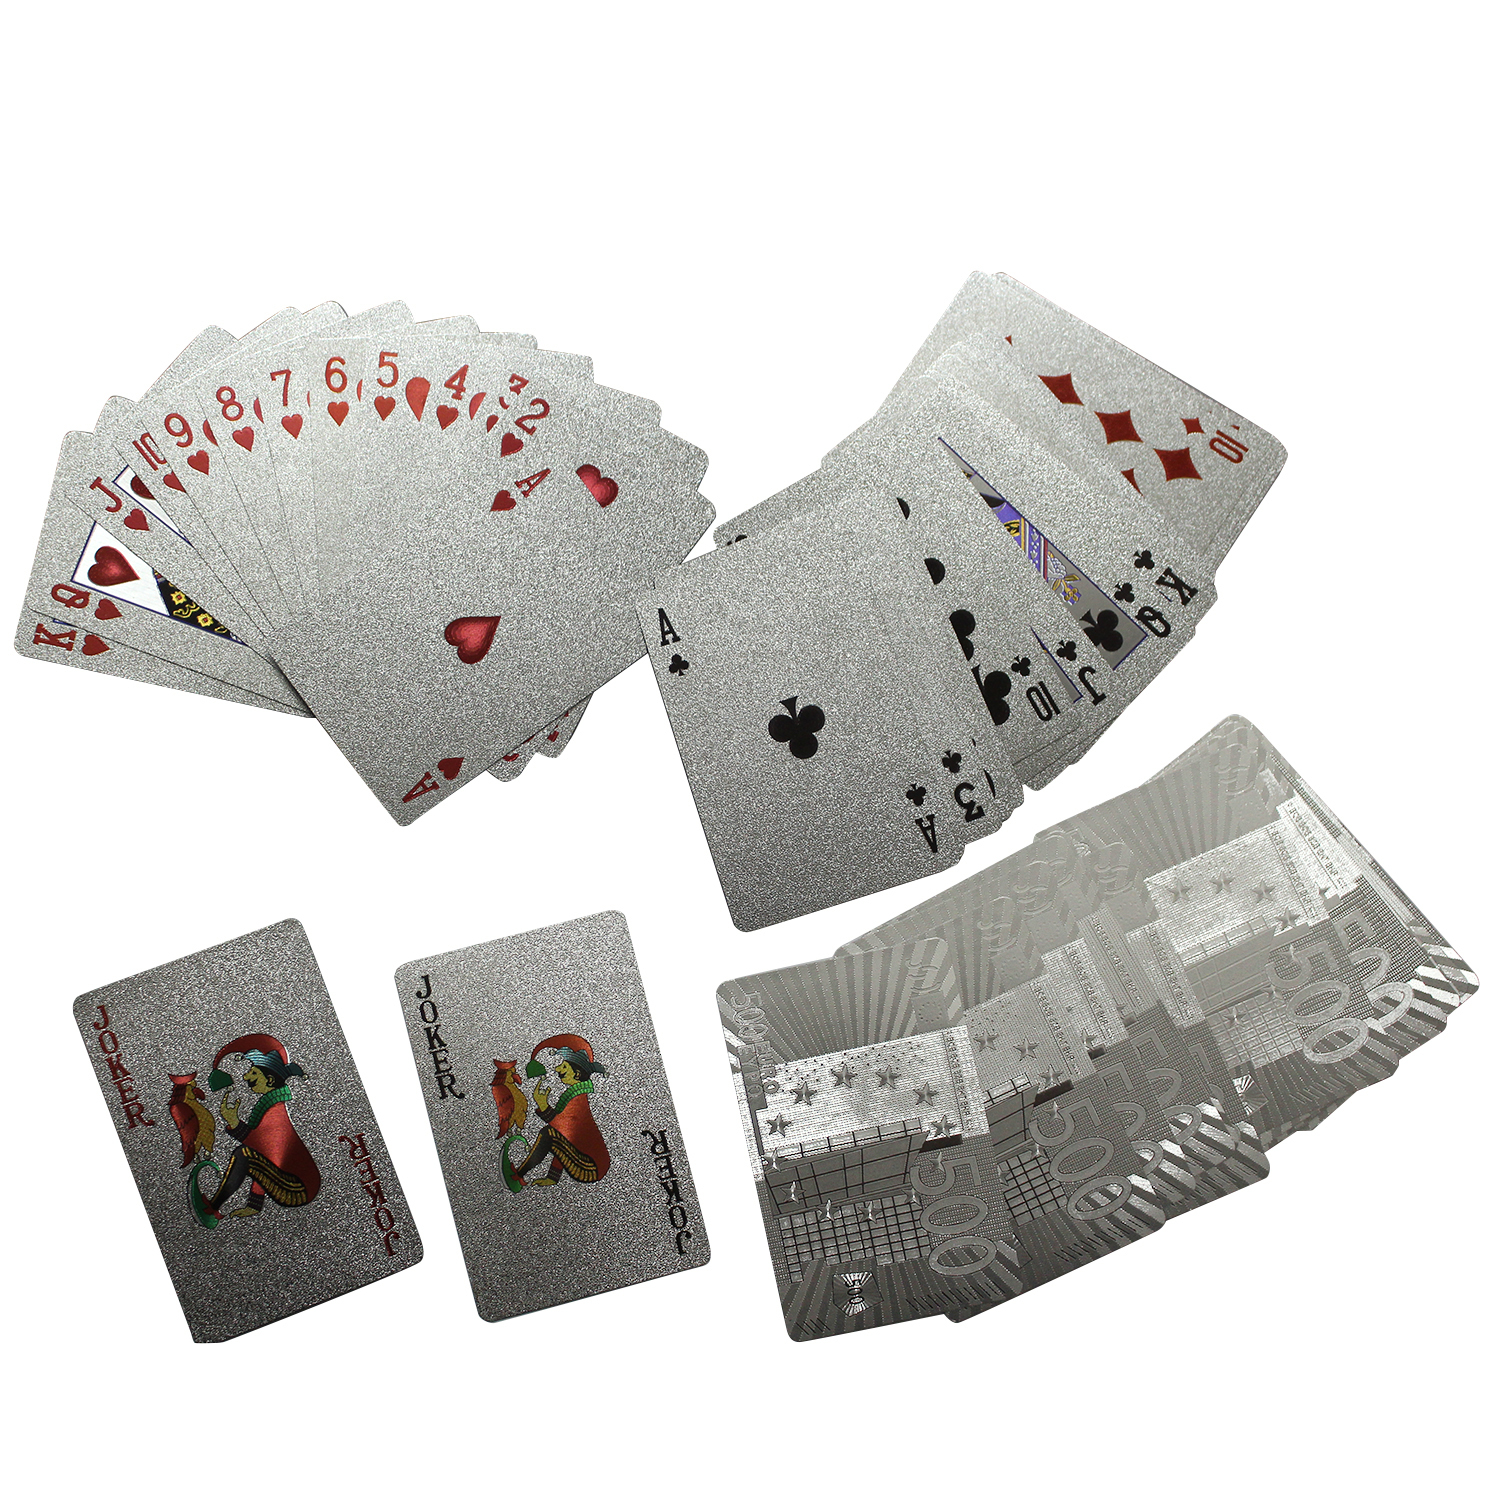 24K Golden Playing Cards Deck Silver Foil Poker Set Magic Card Durable Waterproof Game Cards Euro US Dollar Design Poler Cards 1